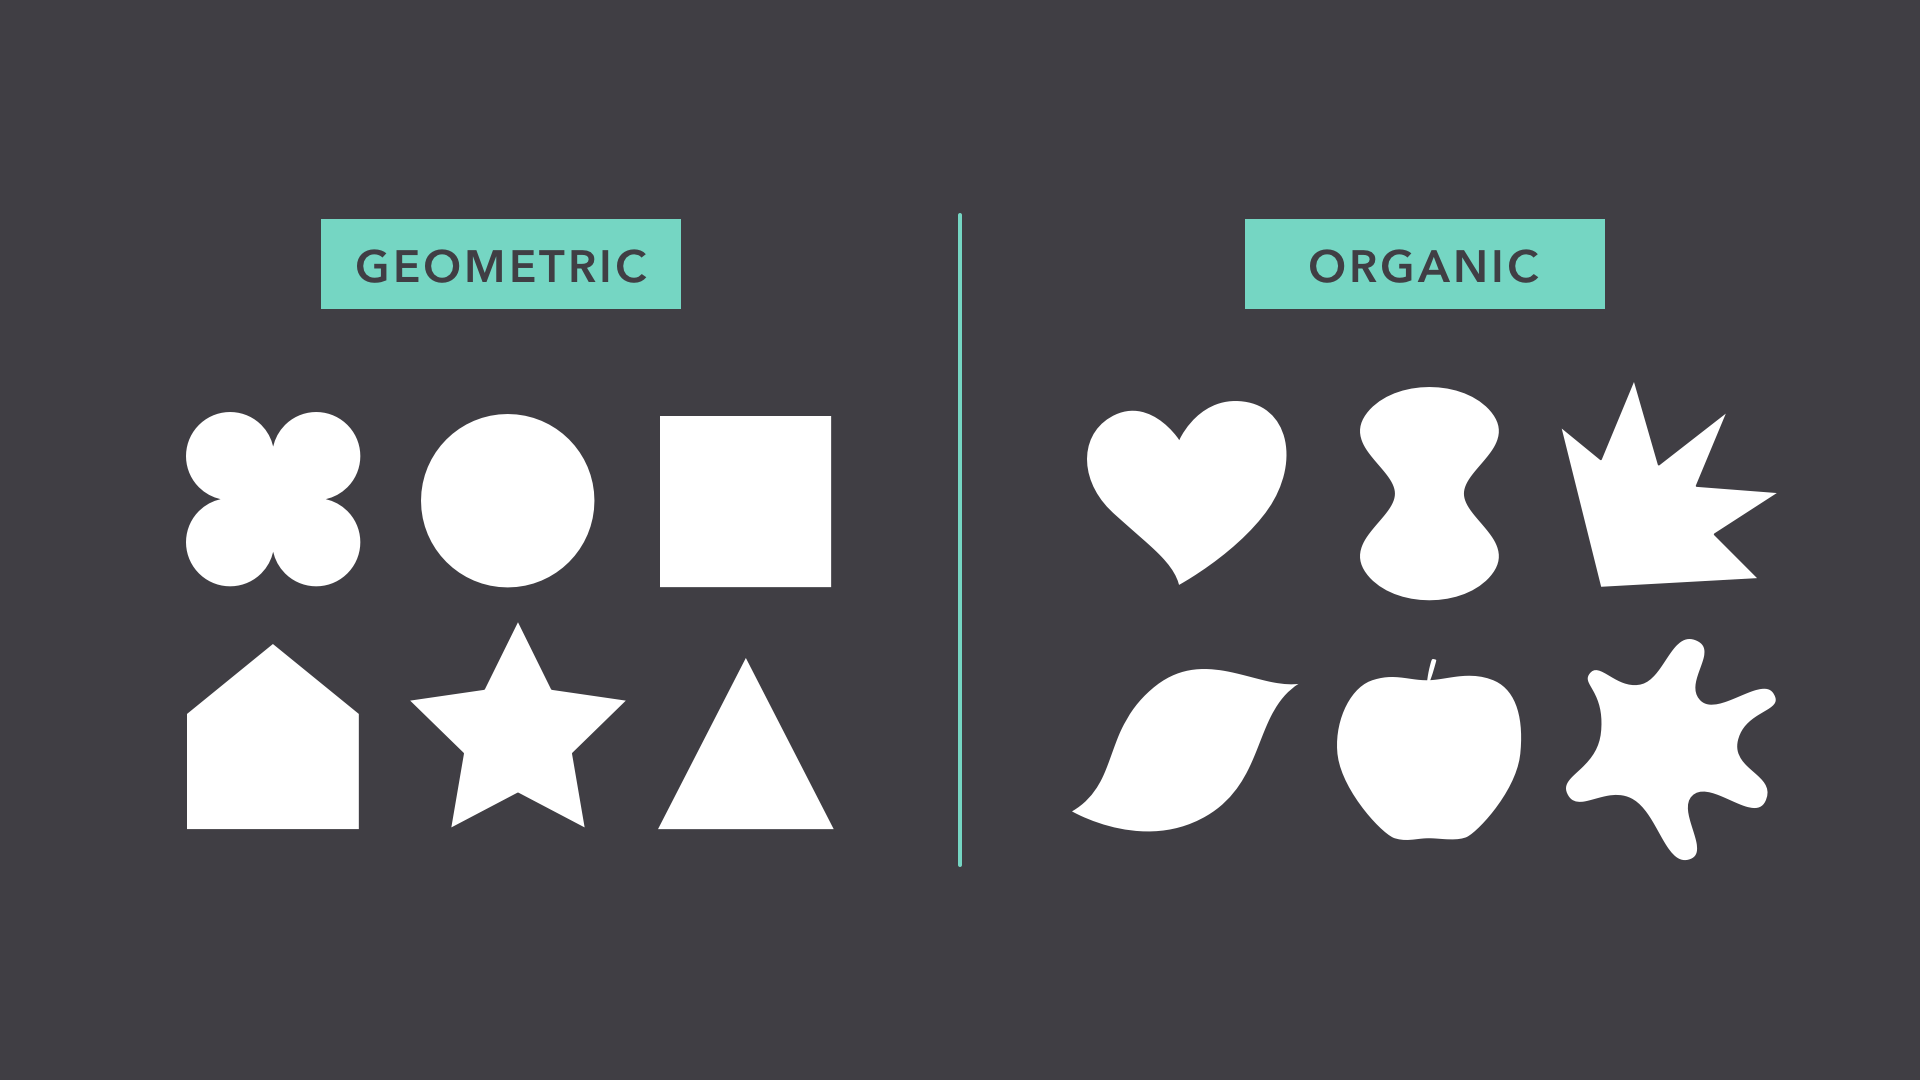 geometric vs. organic shapes